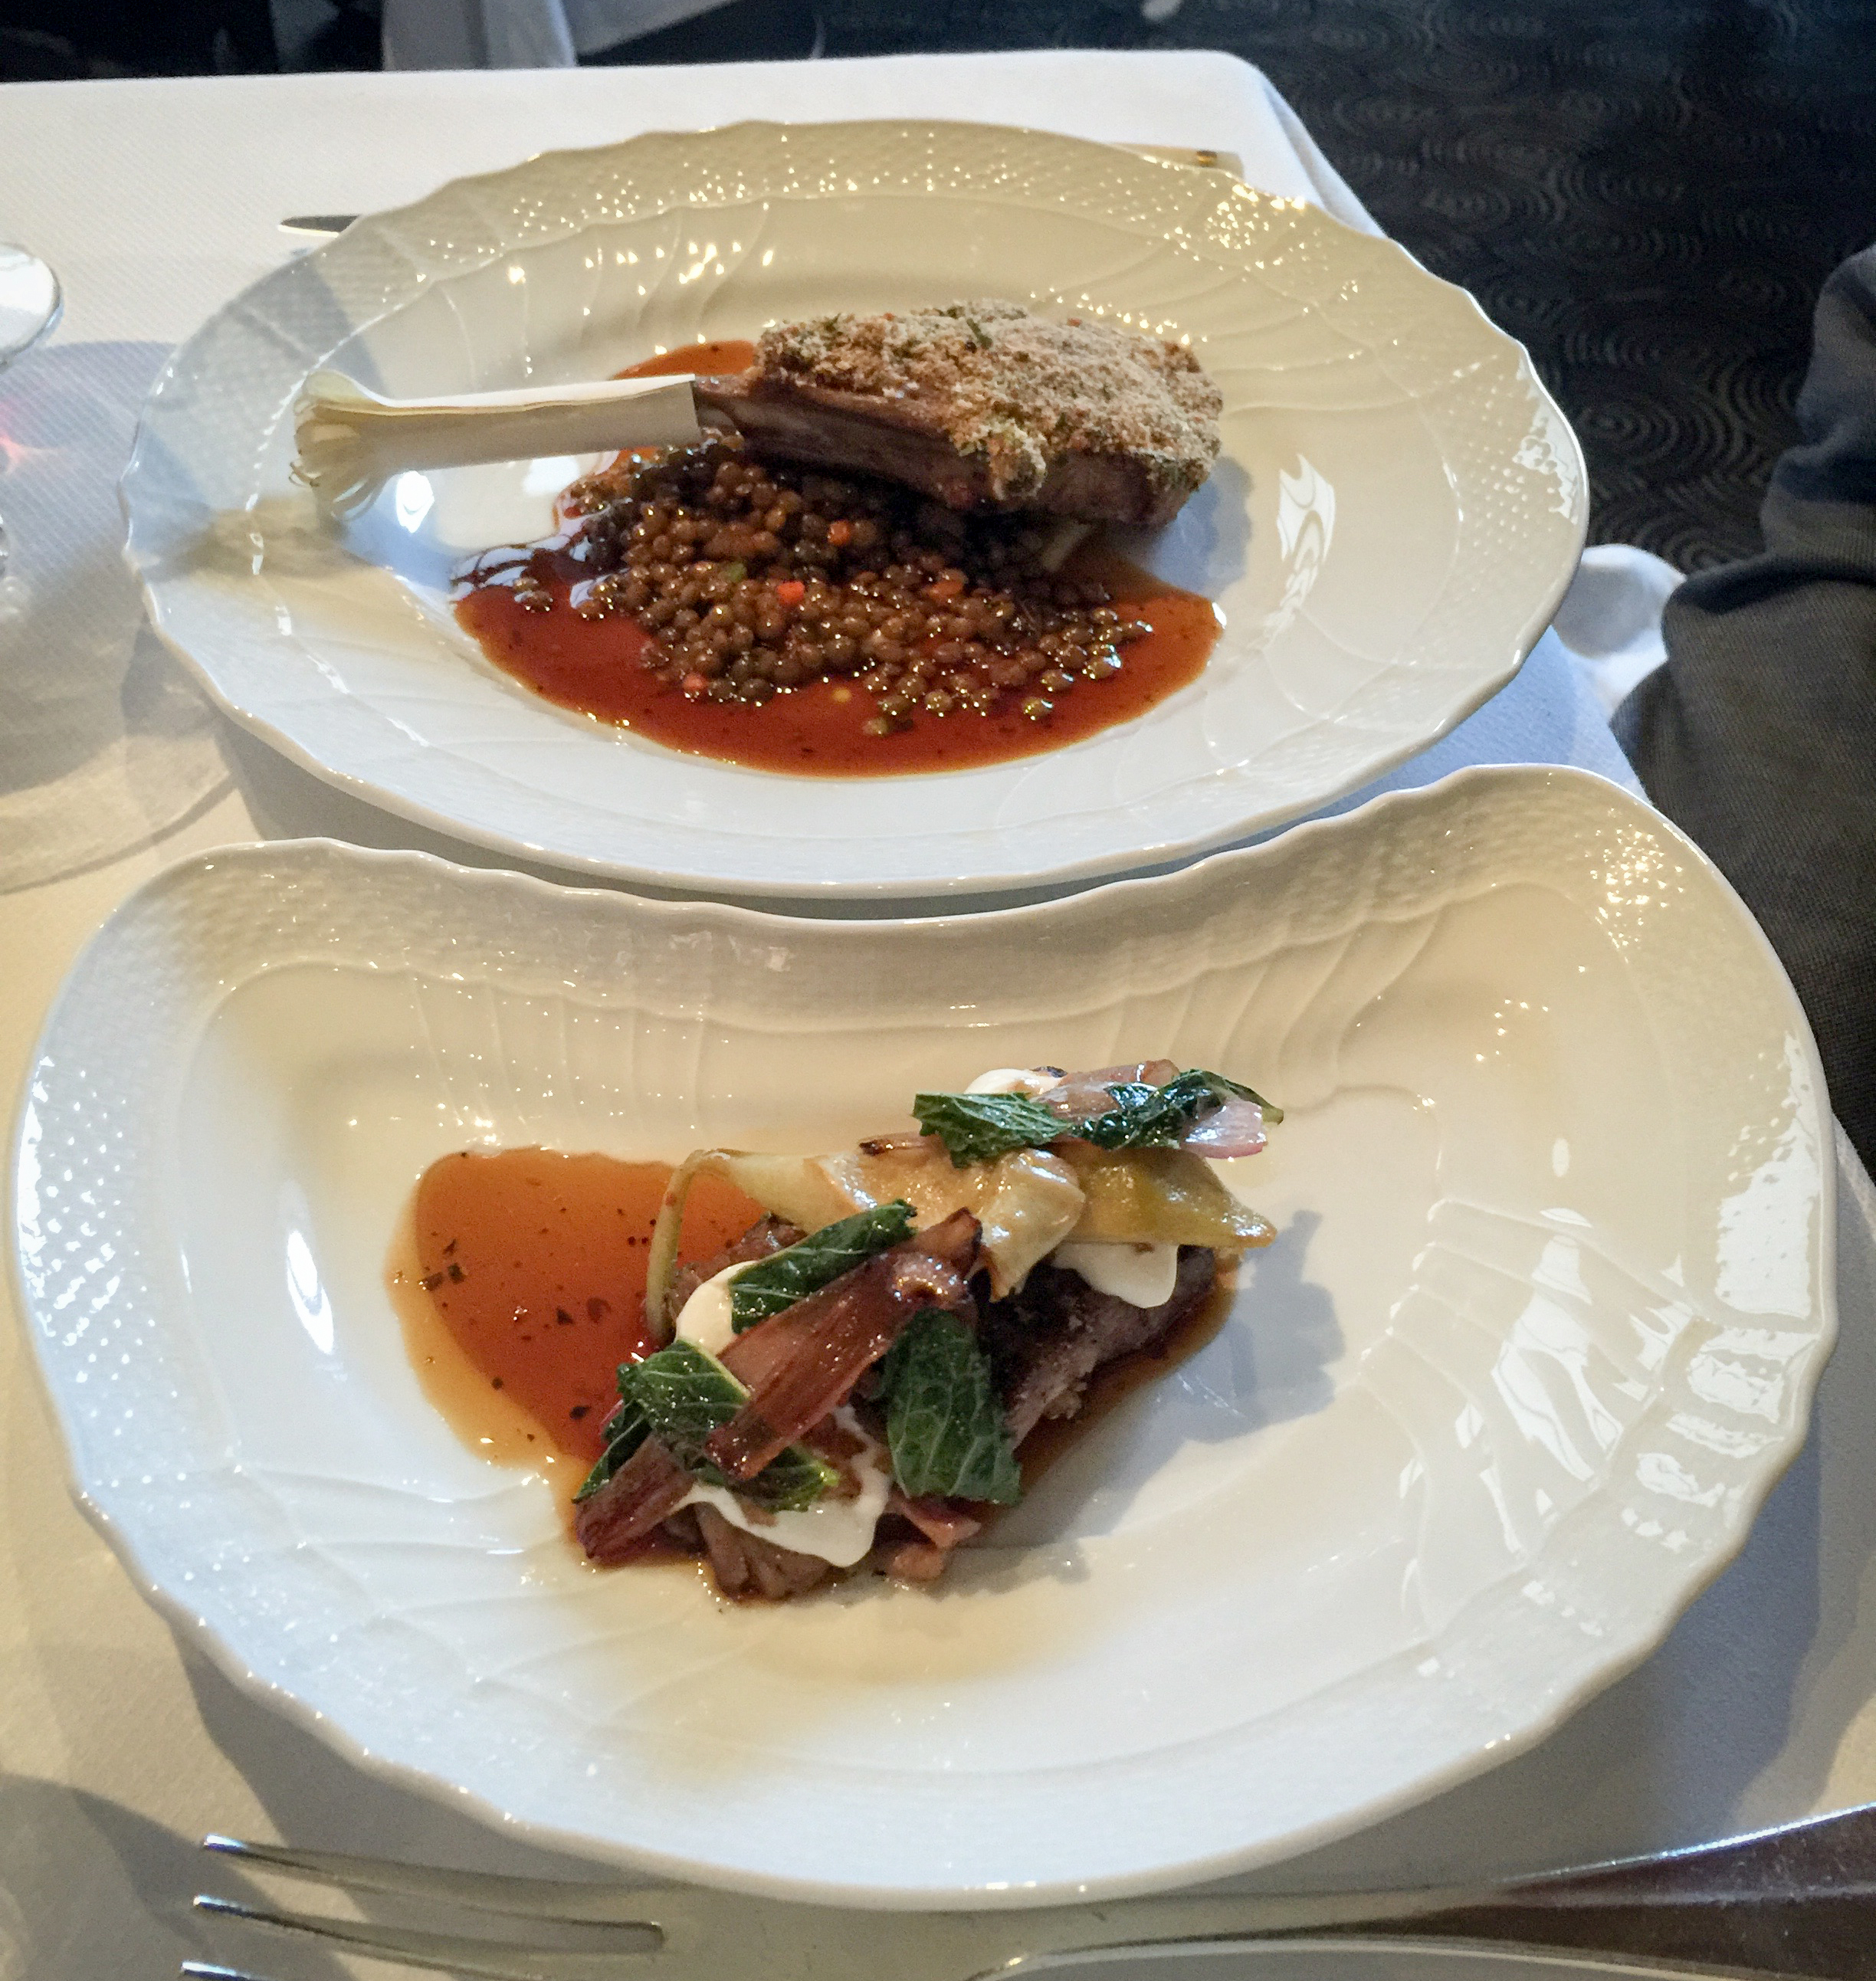 Lamb chop with a side of braised lamb neck